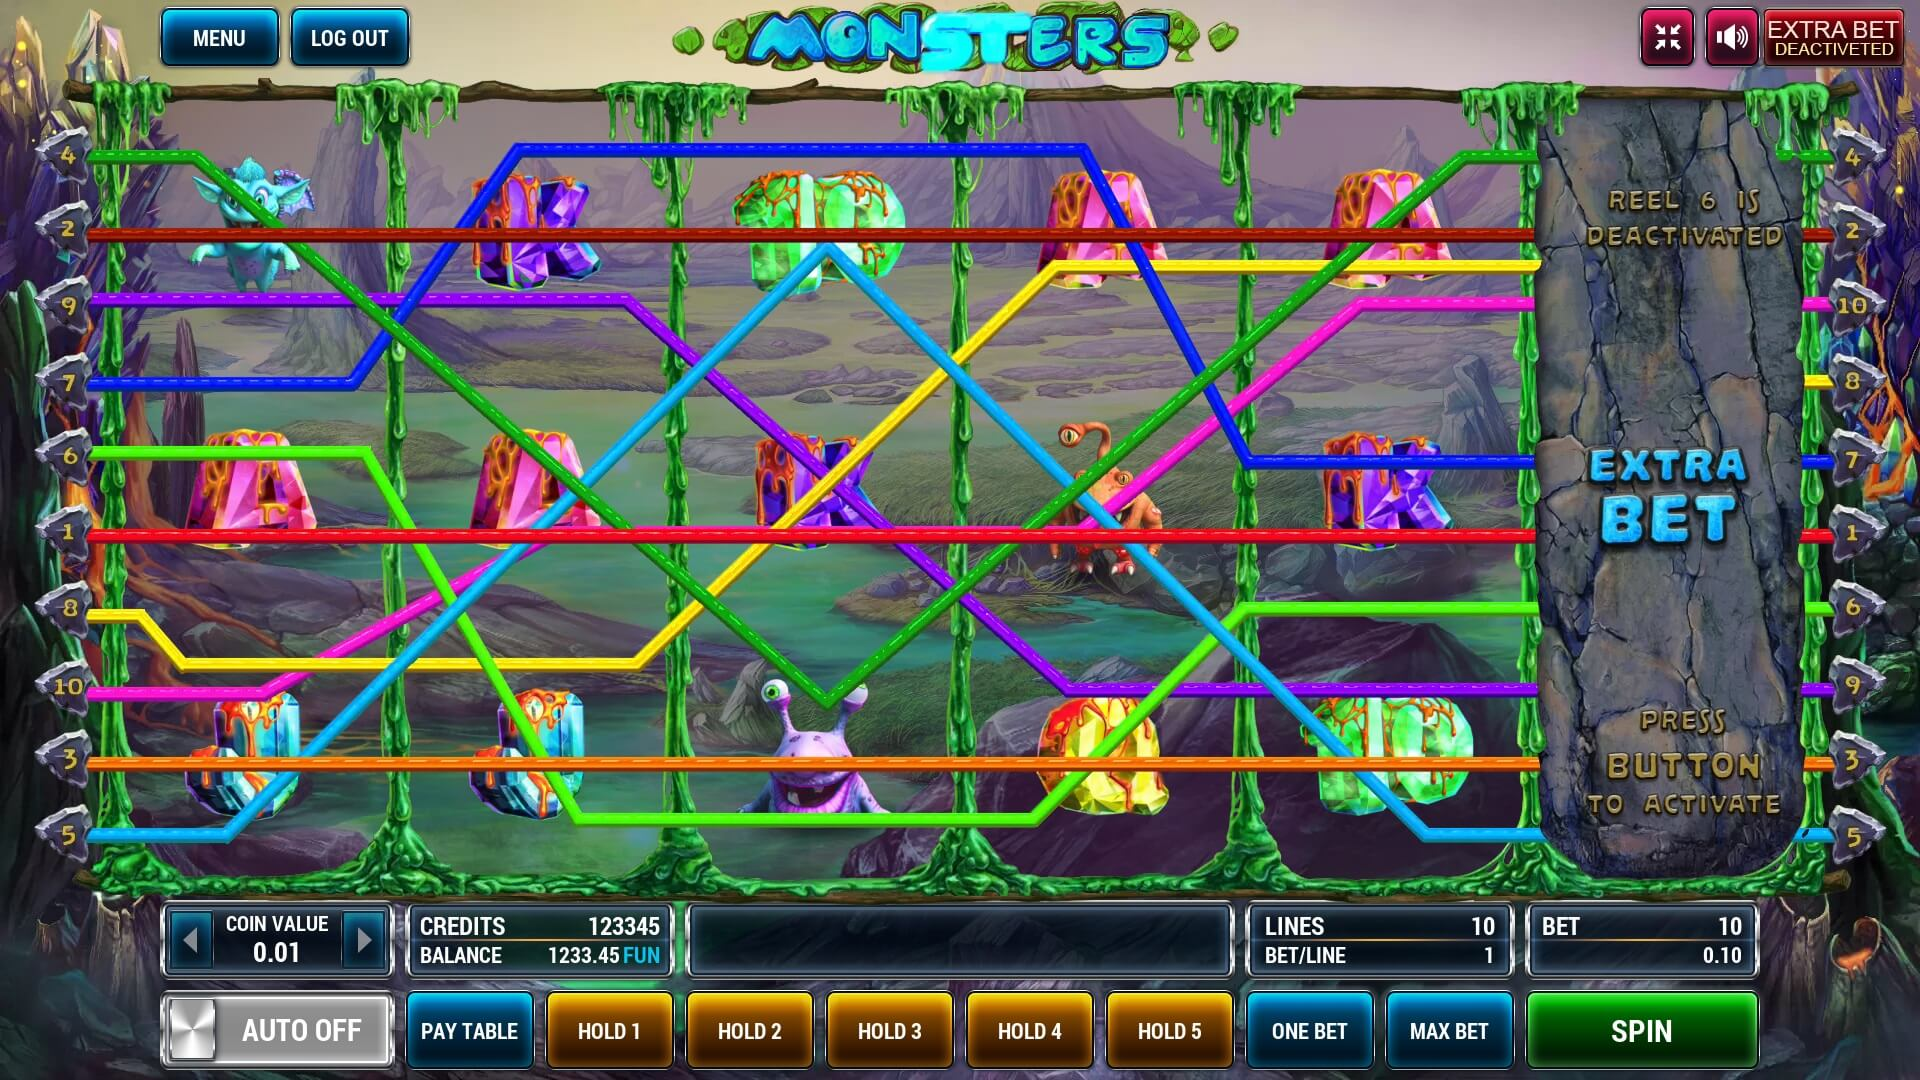 Monsters screenshot 1